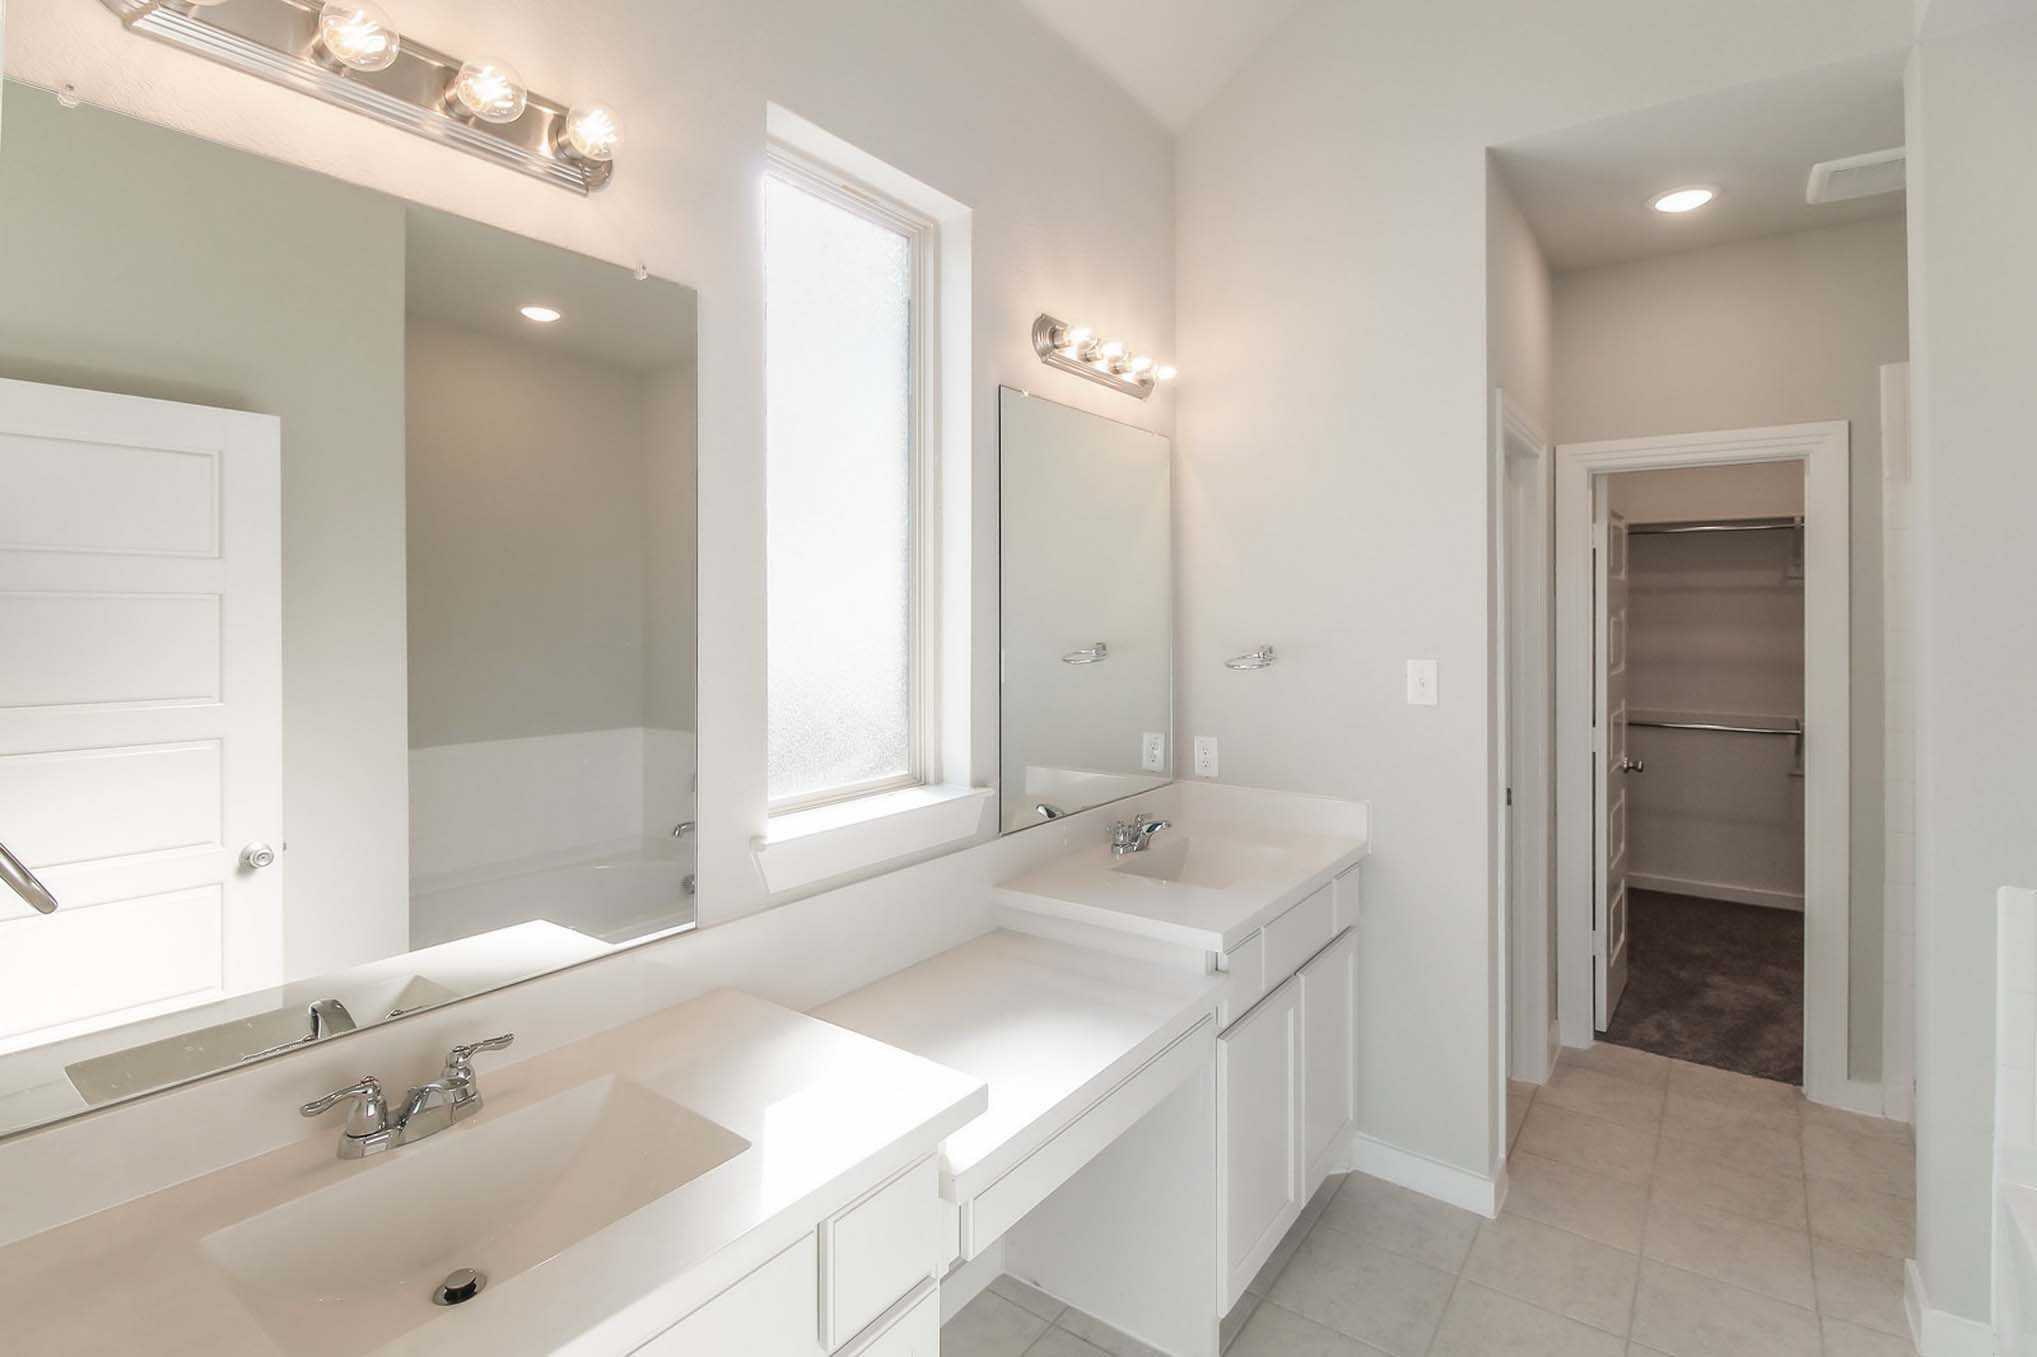 Bathroom featured in the Plan Camden By Highland Homes in San Antonio, TX